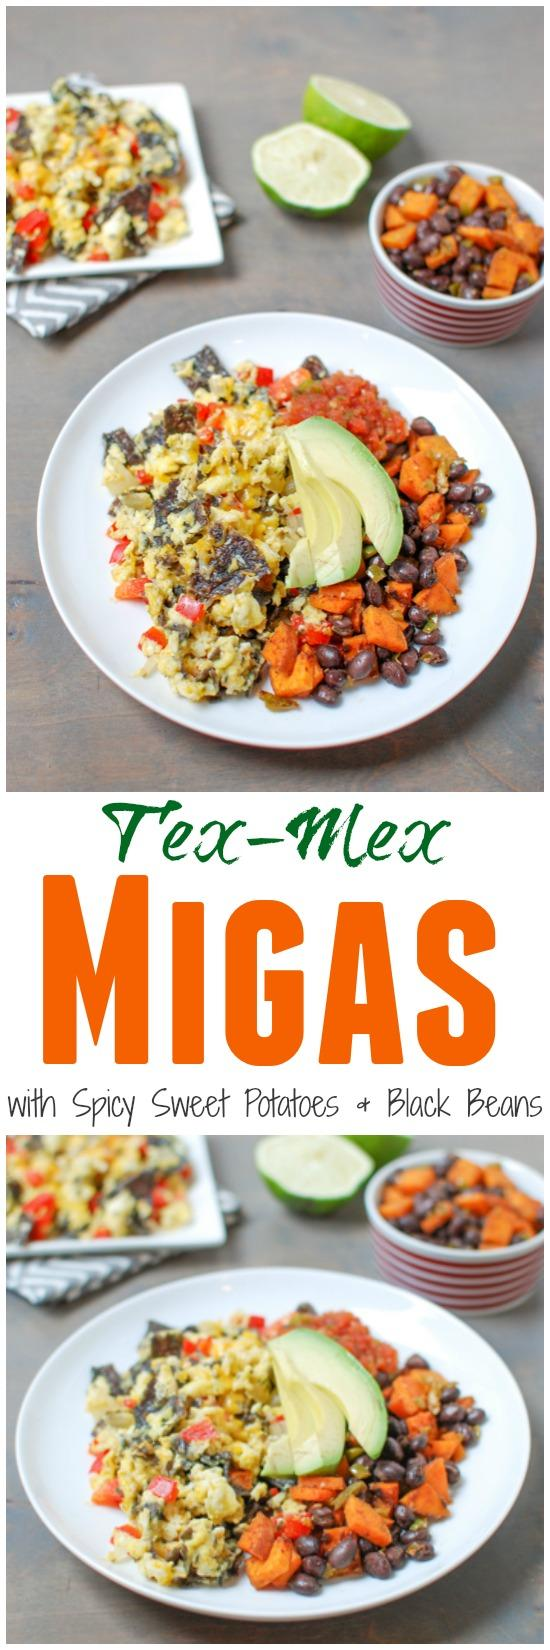 Tex-Mex Migas are a simple, vegetarian recipe, perfect for breakfast or dinner. Add a simple sweet potato and black bean hash for extra protein and fiber!